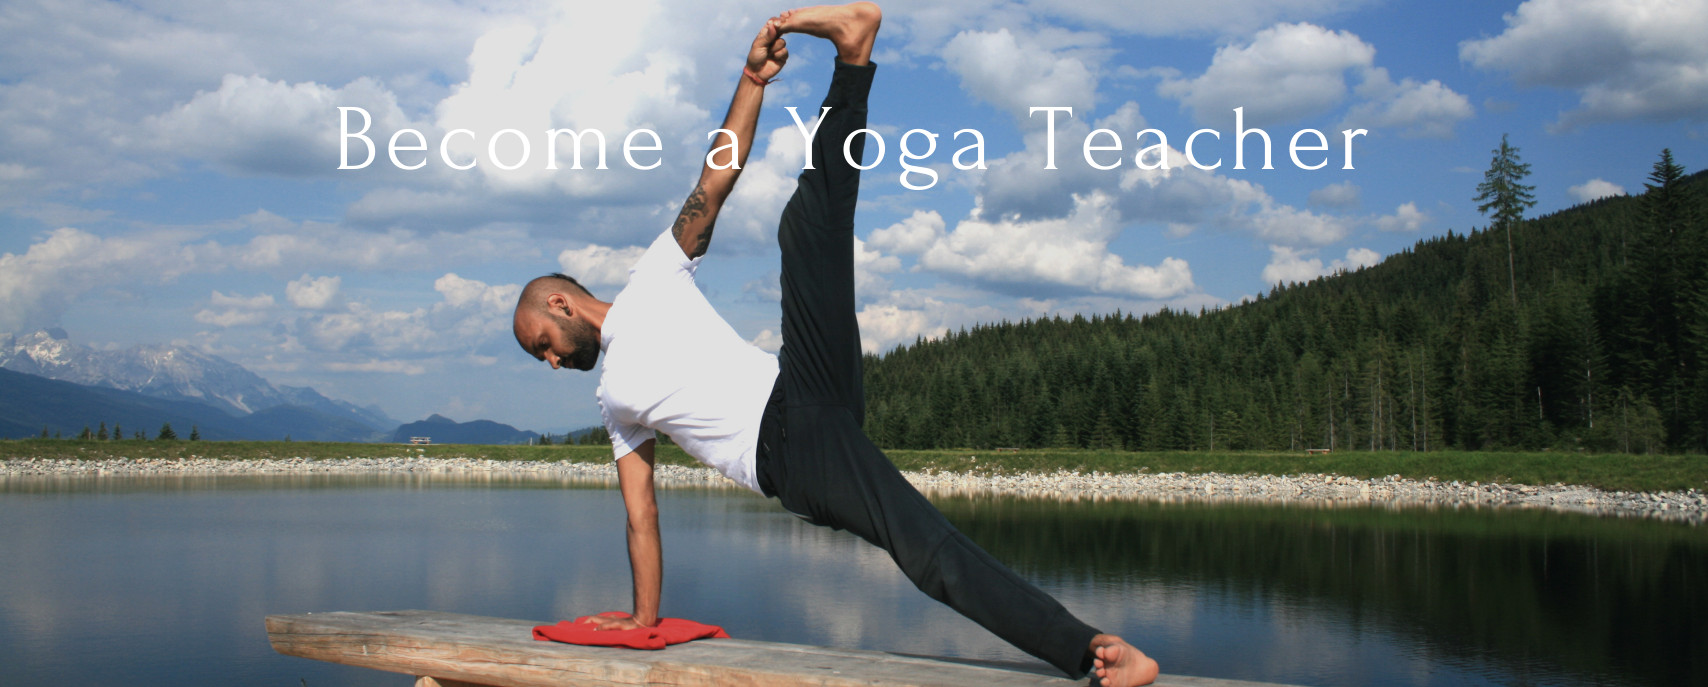 Yog Temple, Yoga Teacher Training in Austria, Yoga in Austria, Classical Hatha Yoga, Shamanism, YTTC200